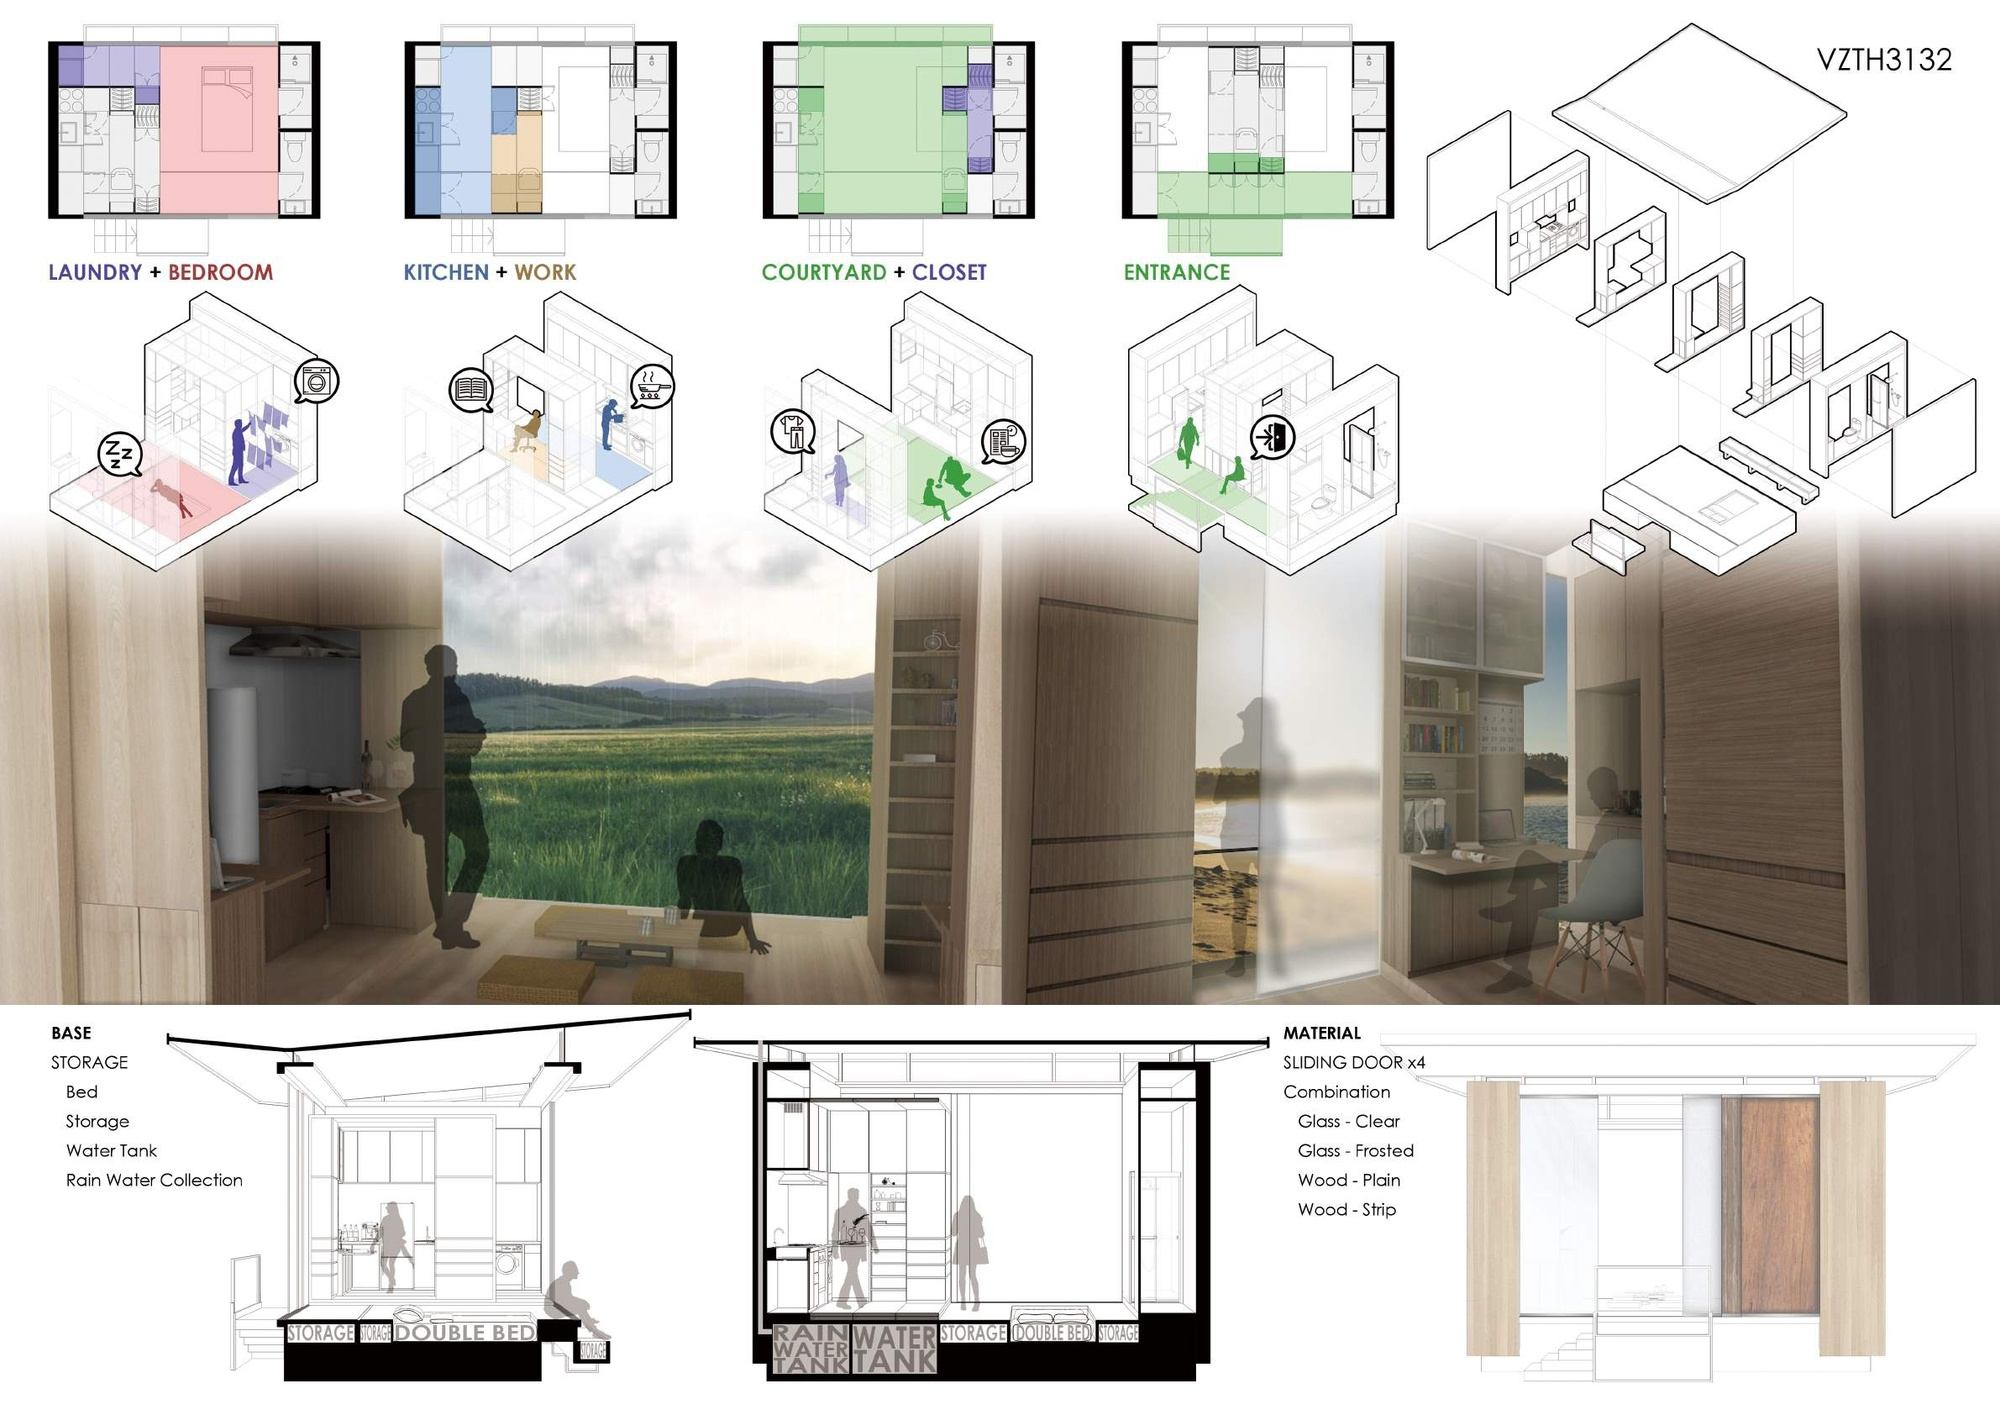 Architecture House Design Competitions Of Gallery Of Tiny House Design Competition Winners Revealed 6